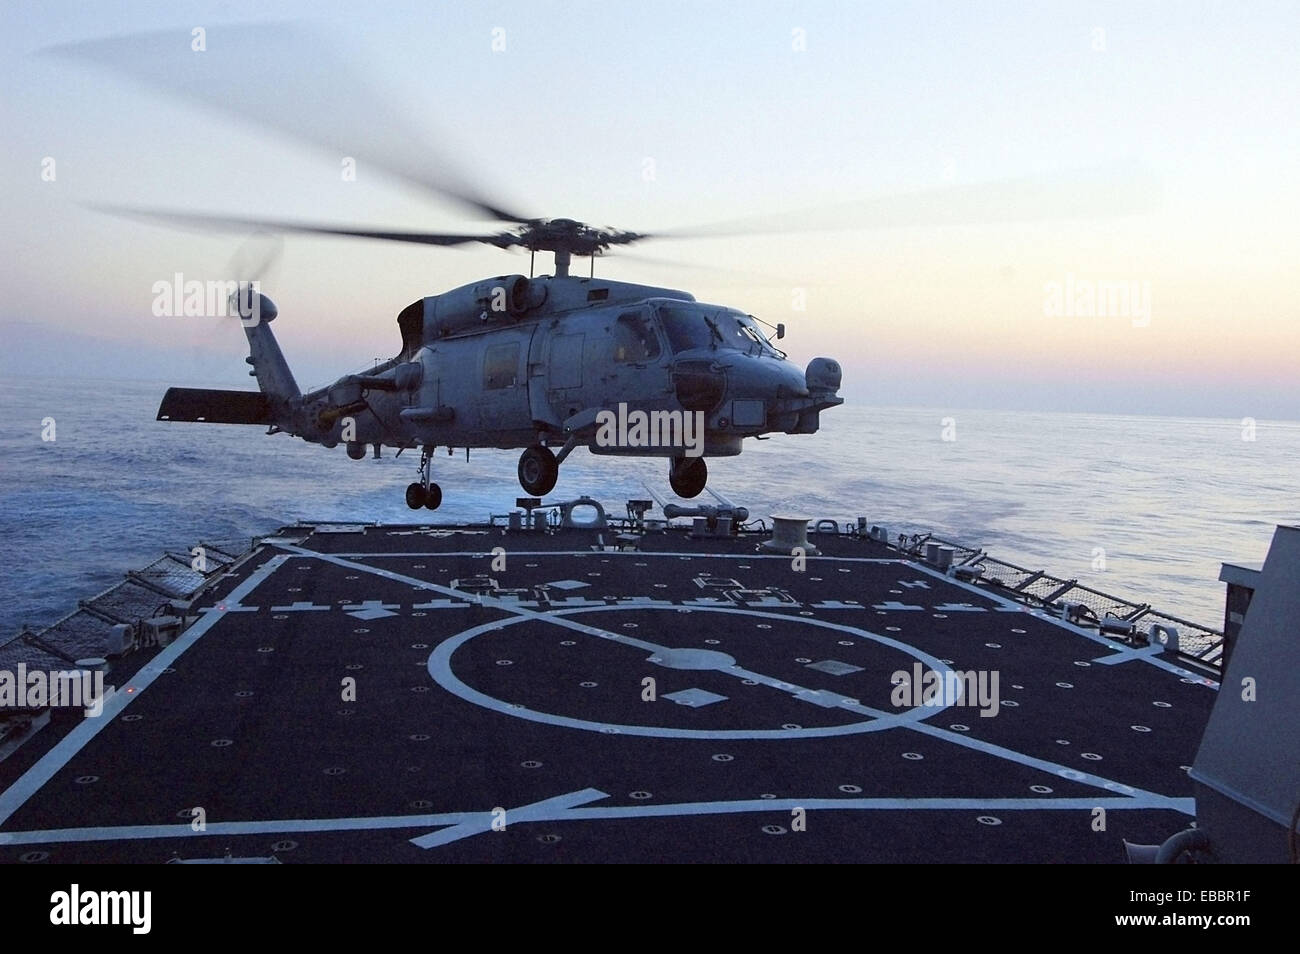 Atlantic Ocean (August 2, 2007) - An SH-60 Seaknight helicopter lands on the flight deck of the guided missile destroyer Stock Photo